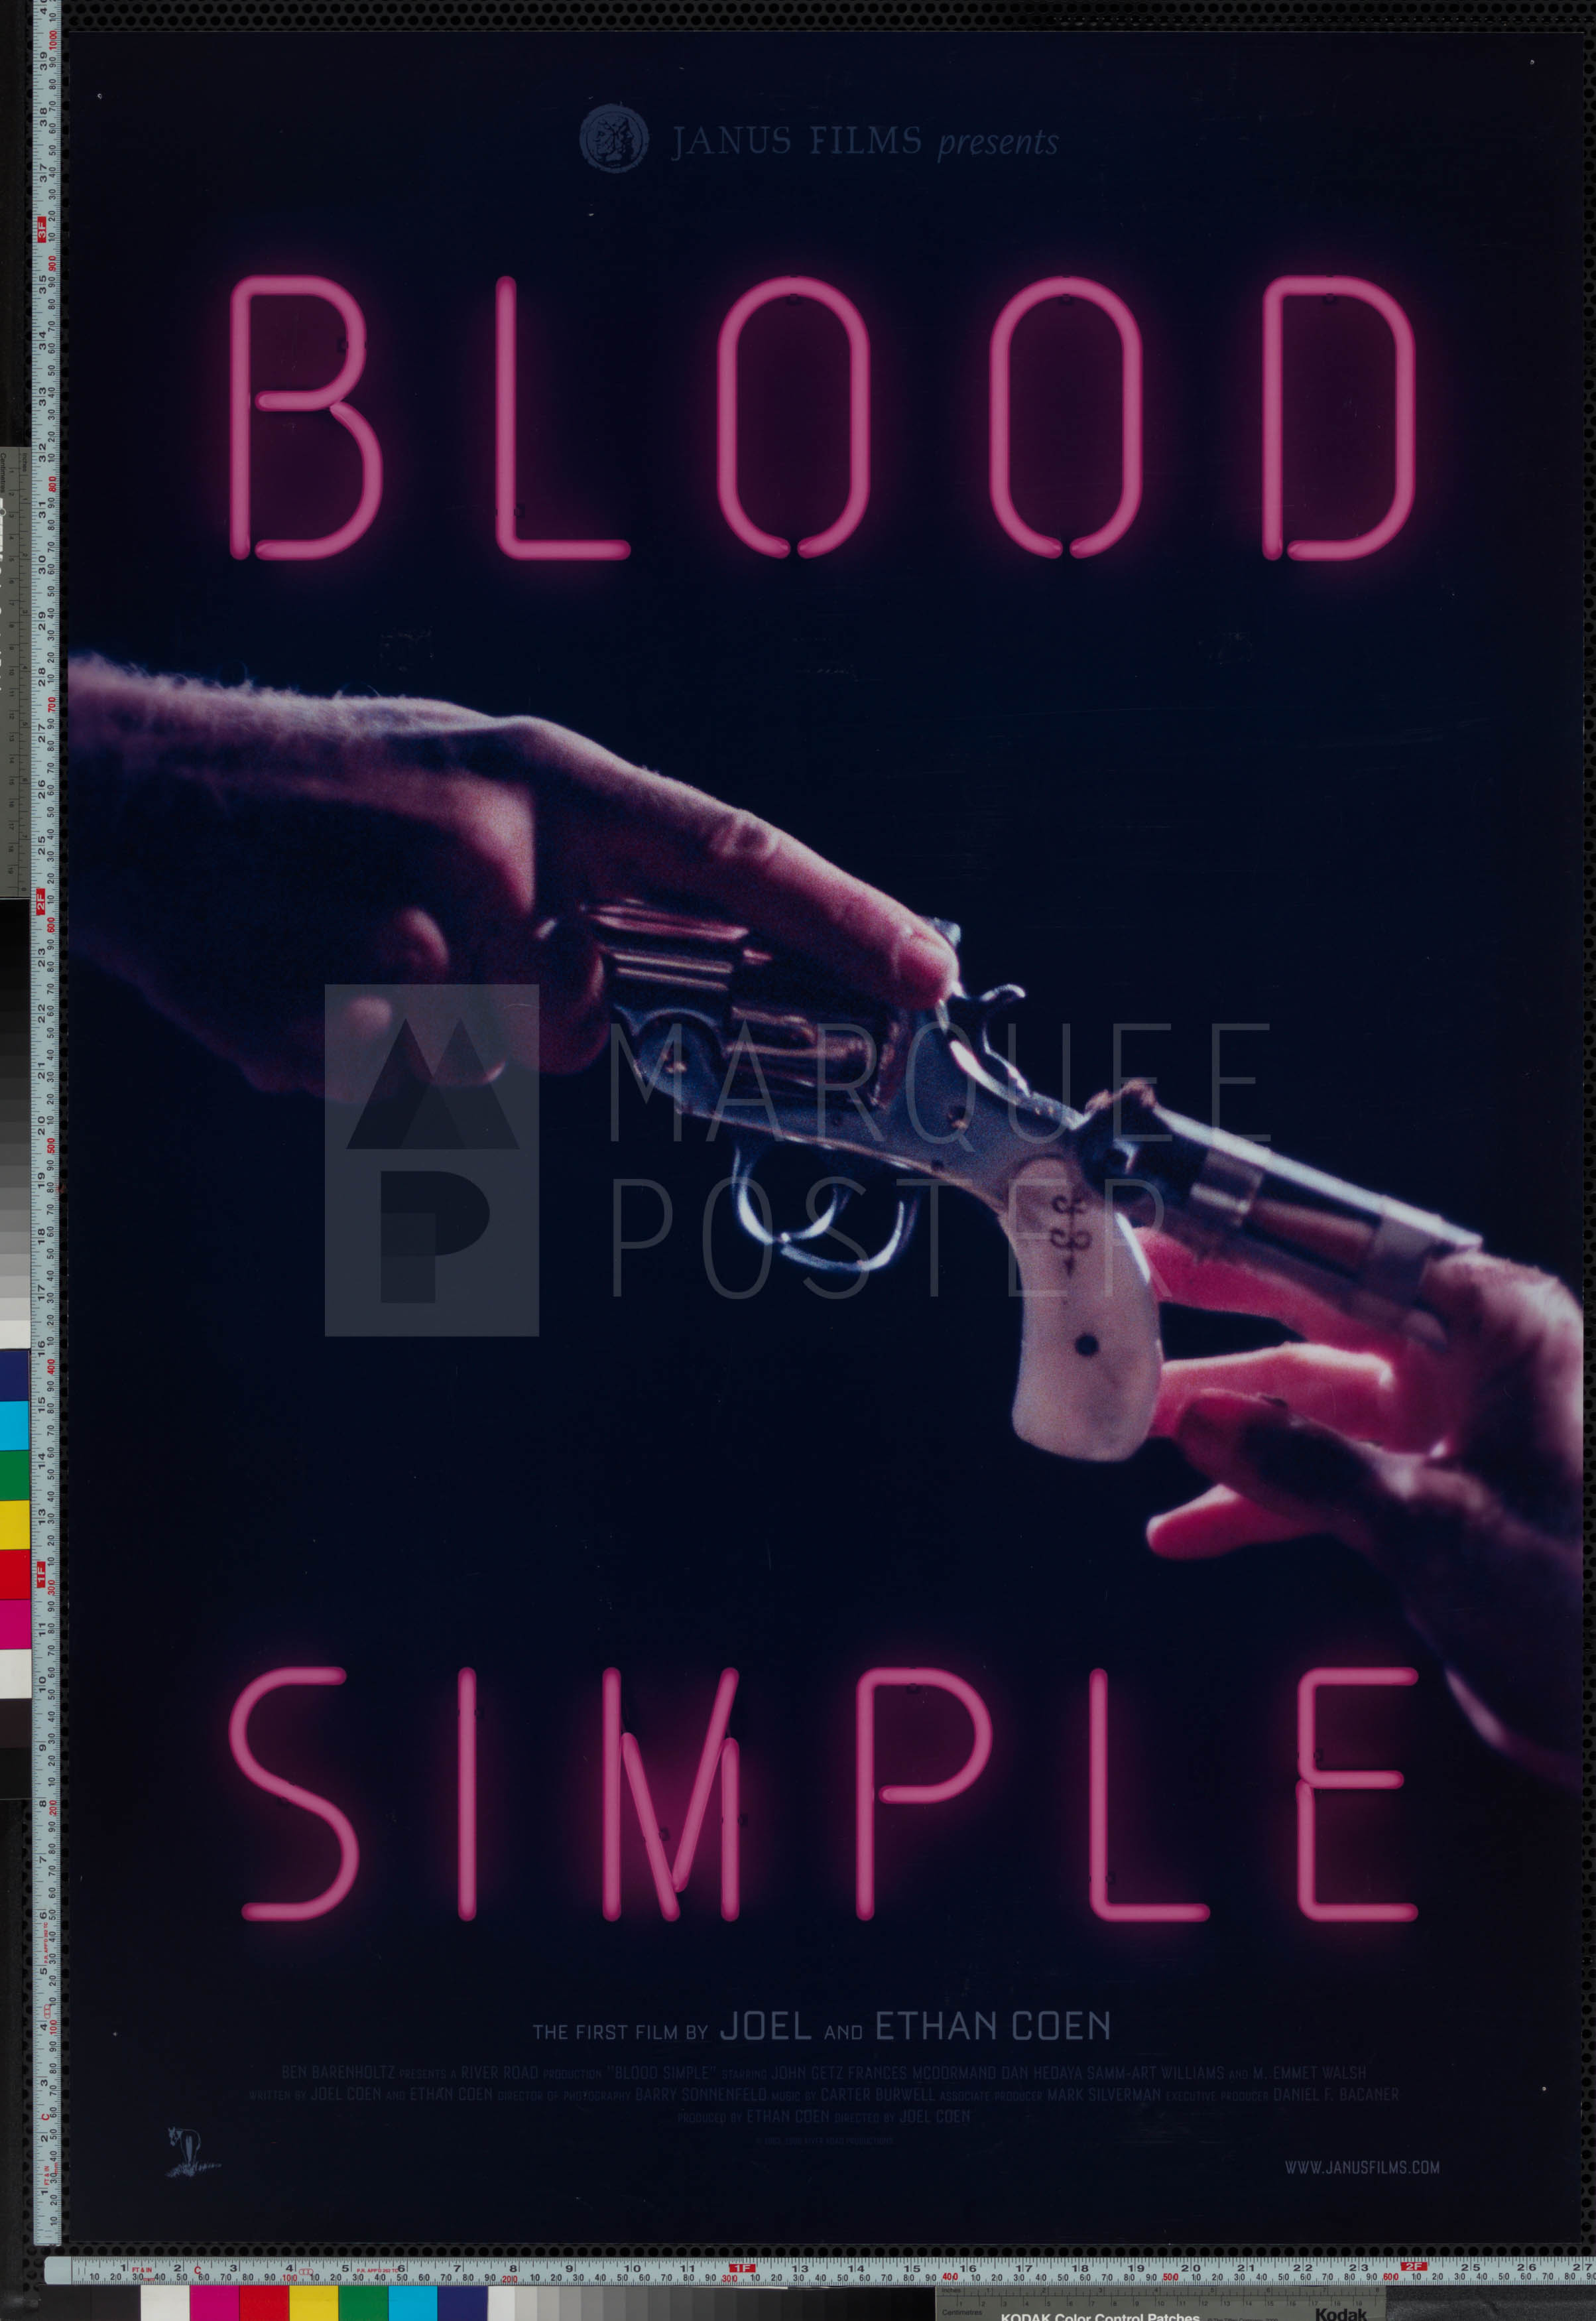 35-blood-simple-re-release-us-1-sheet-2016-02